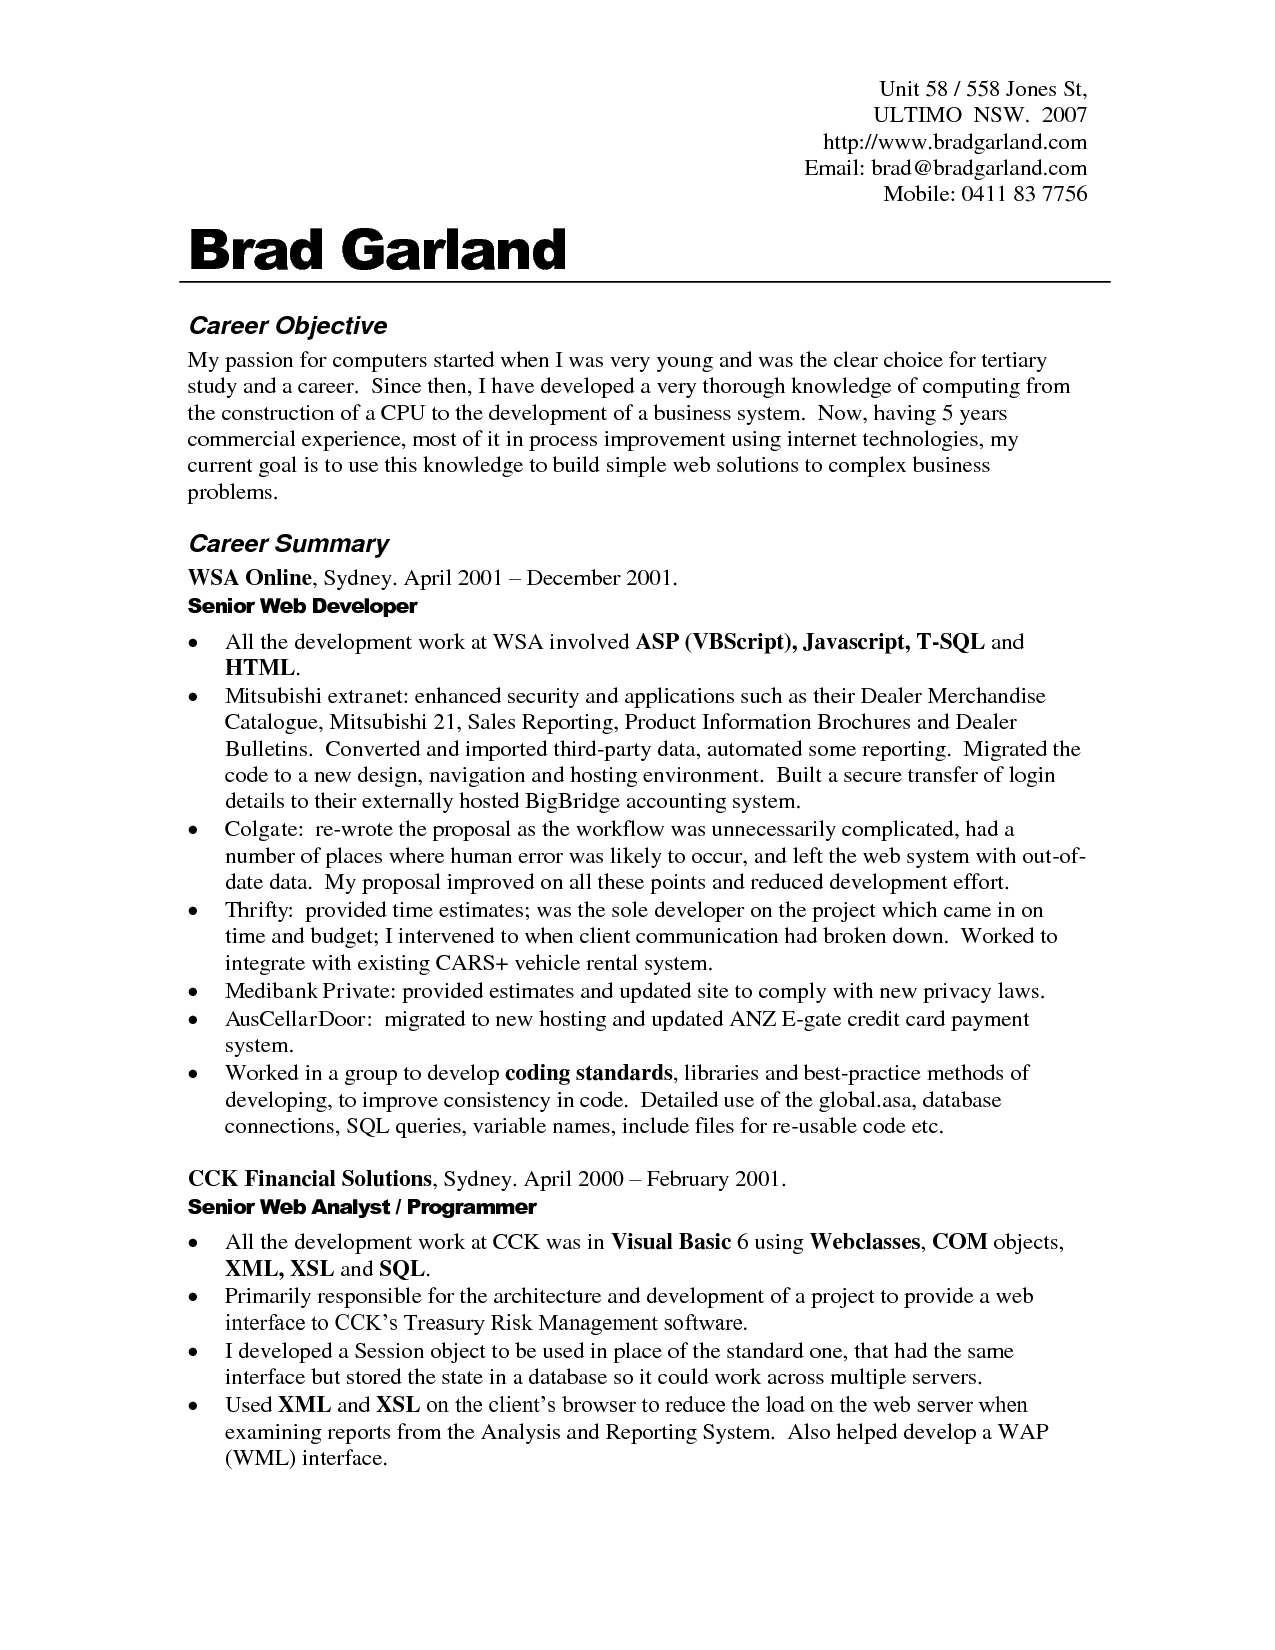 How To Write A Professional Resume For A Job How To Write Career Objective With Sample